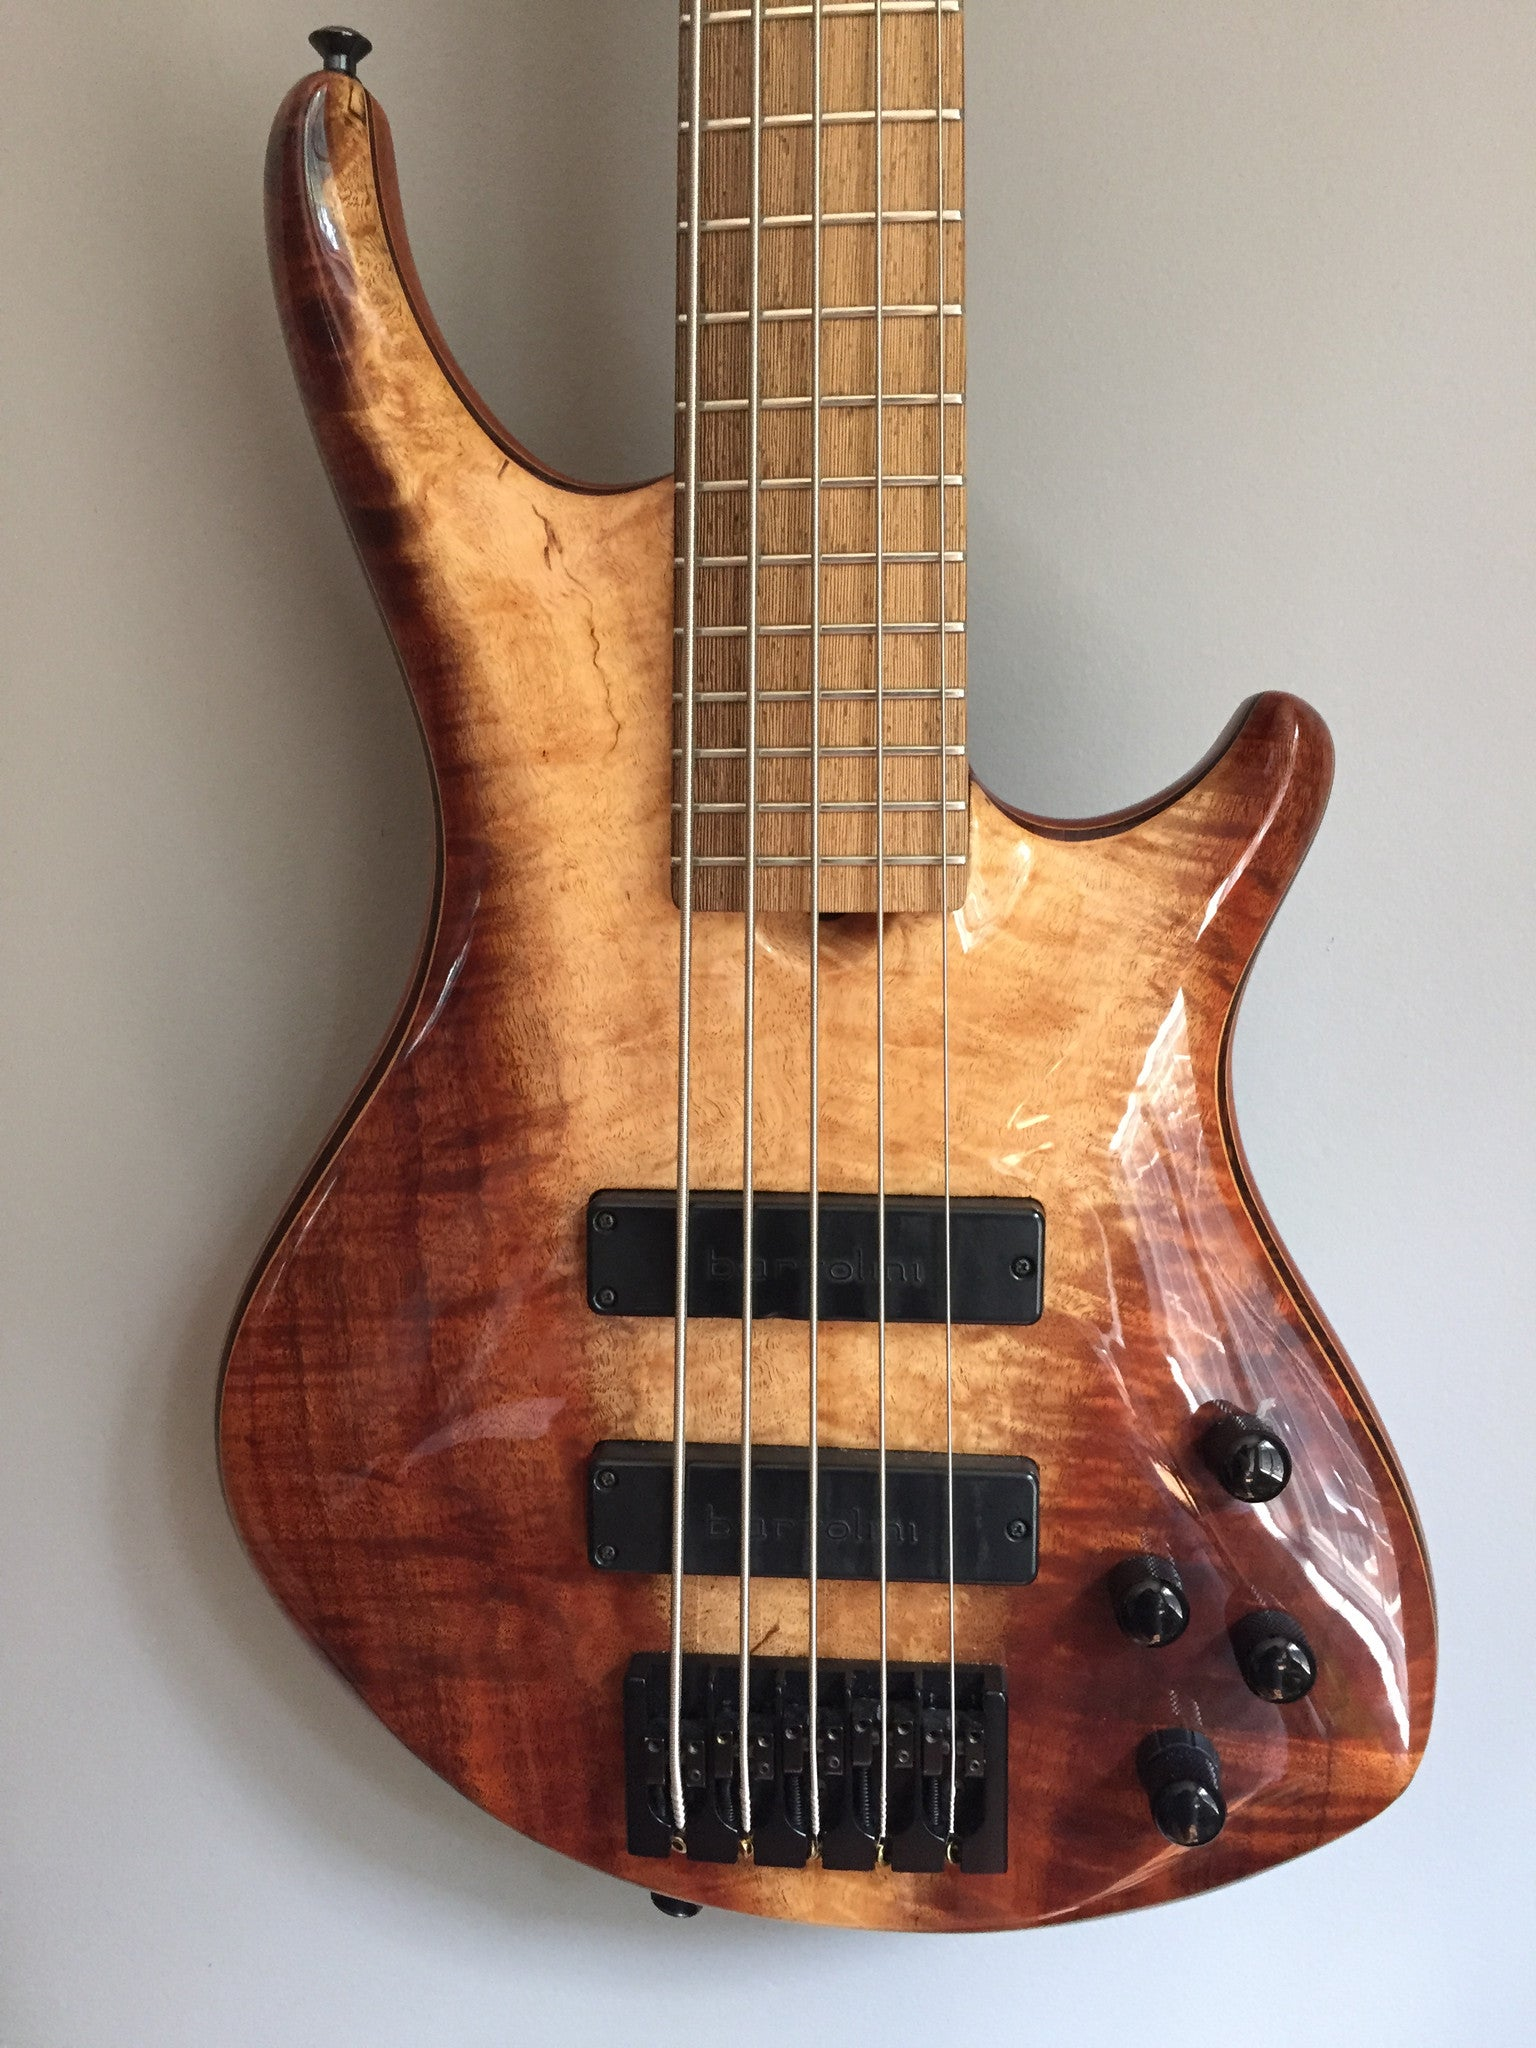 (SOLD) Roscoe SKB Signature 5-string Fretted Bass